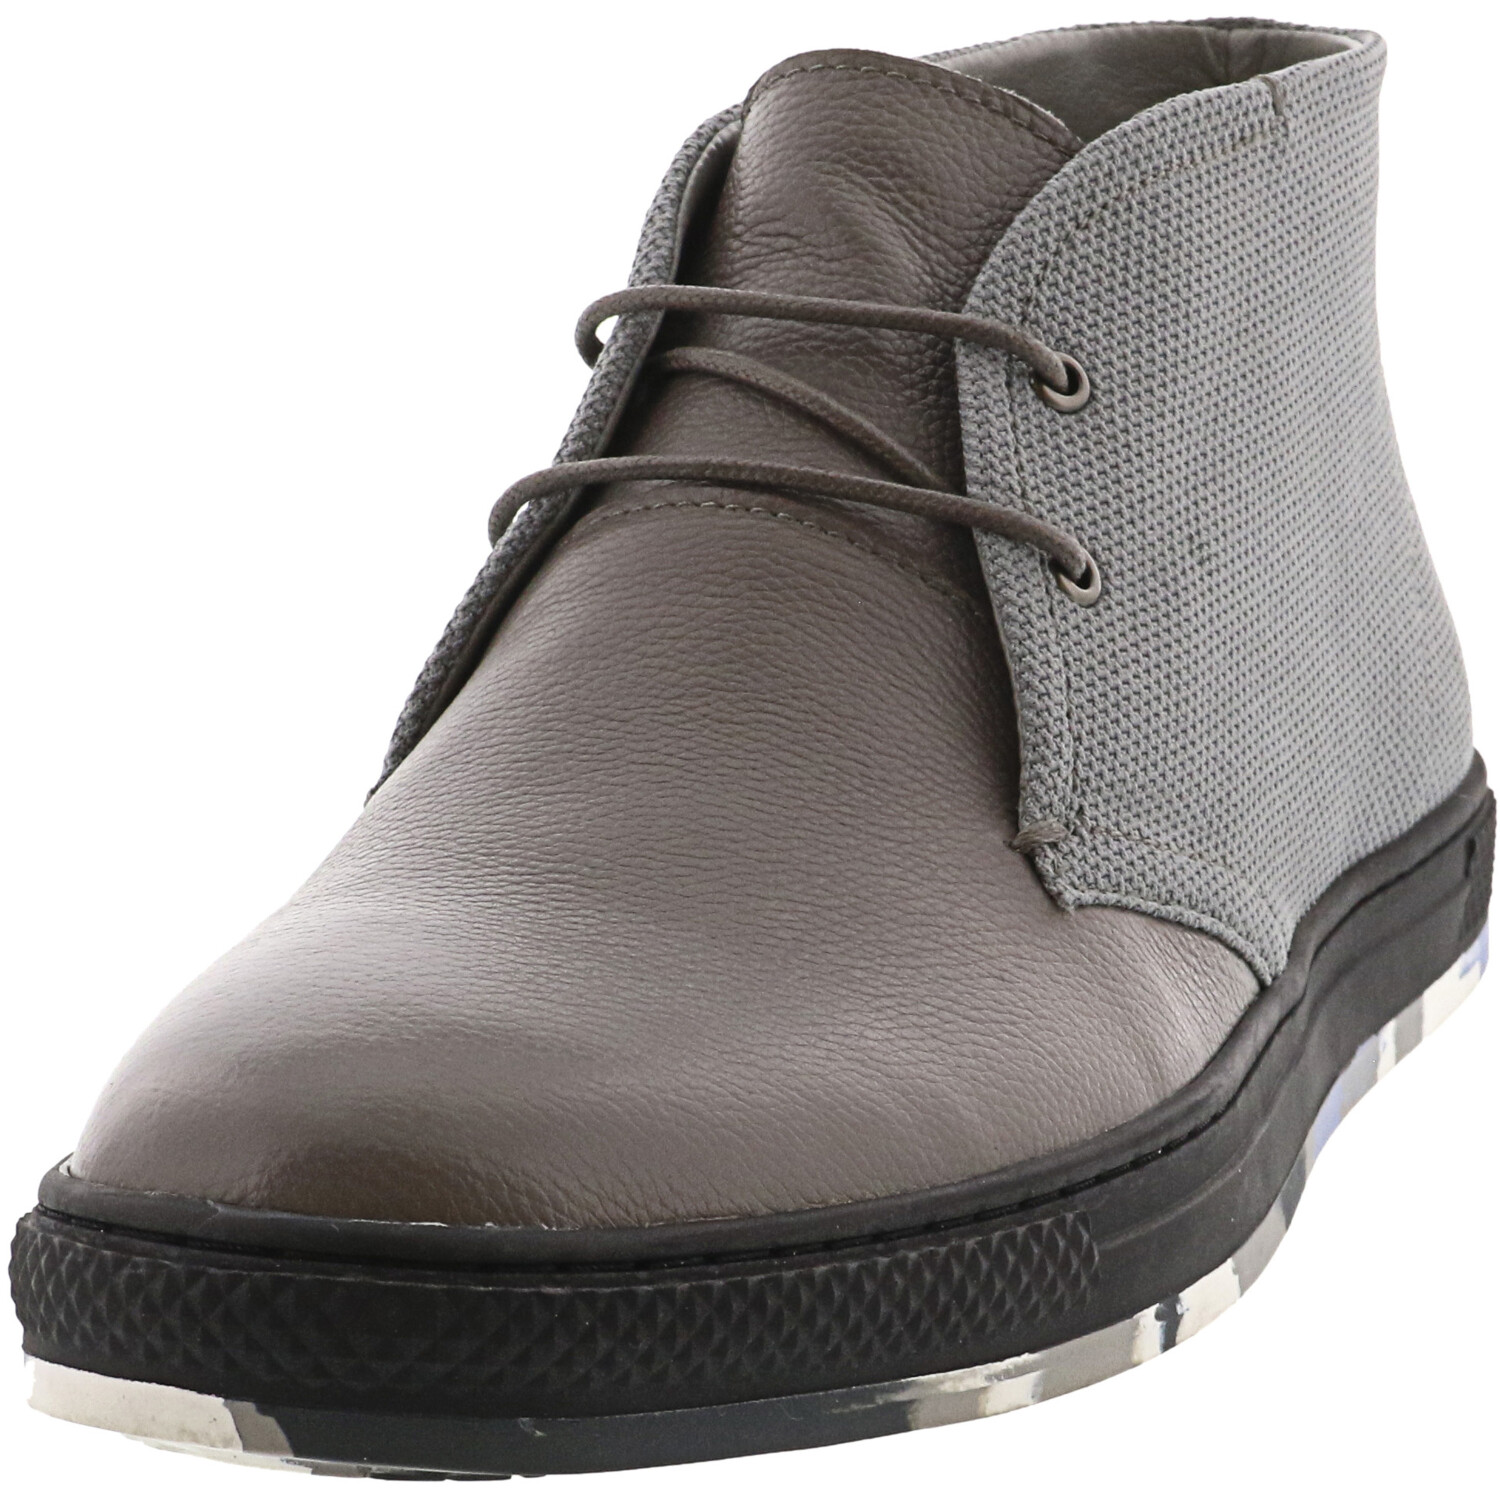 English Laundry Men's William Grey High-Top Leather Sneaker - 9M